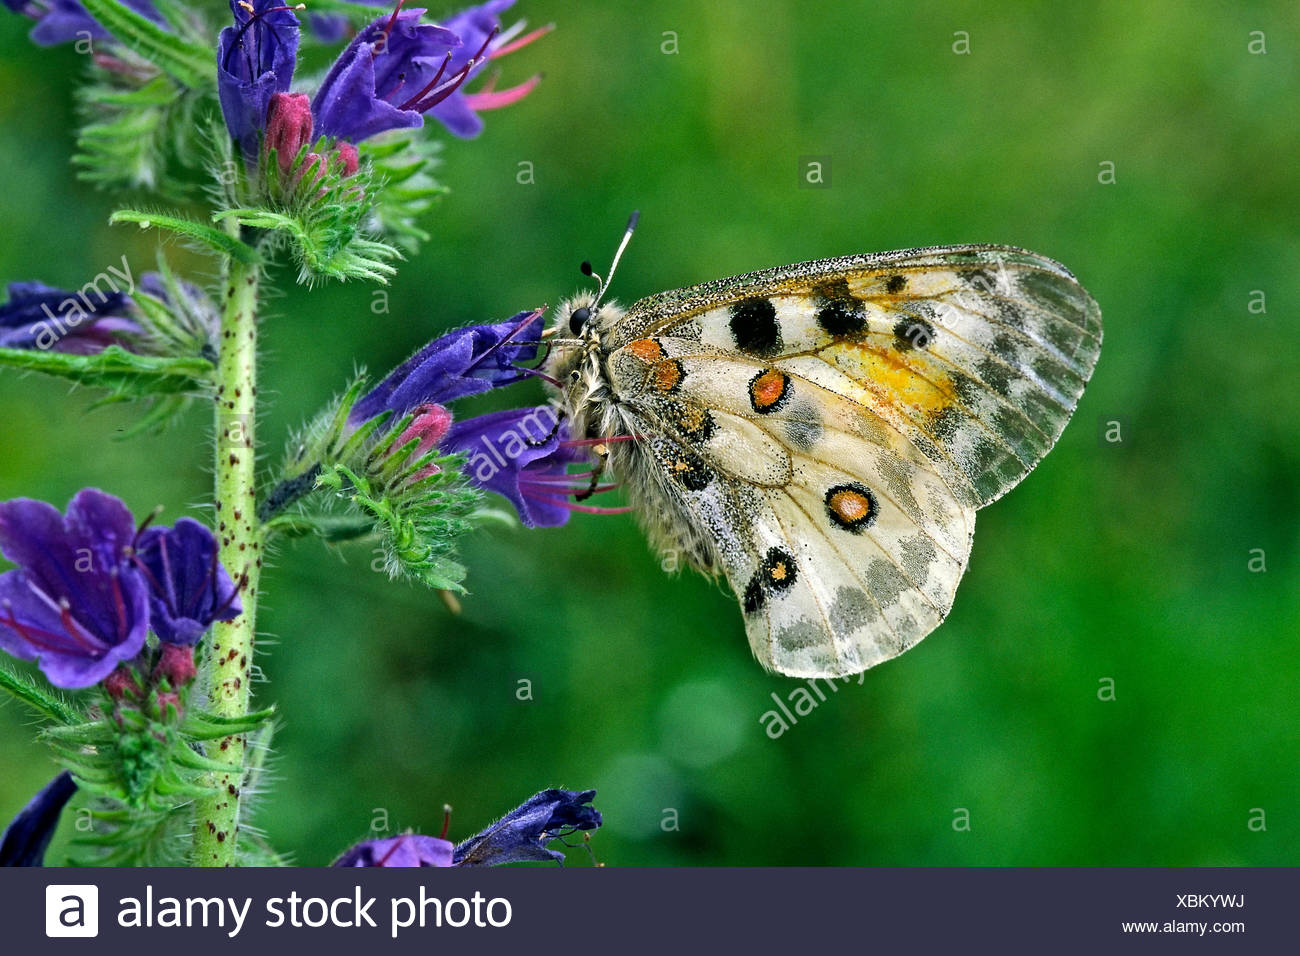 blue protected sheltered butterfly conservation of nature blank european Stock Photo